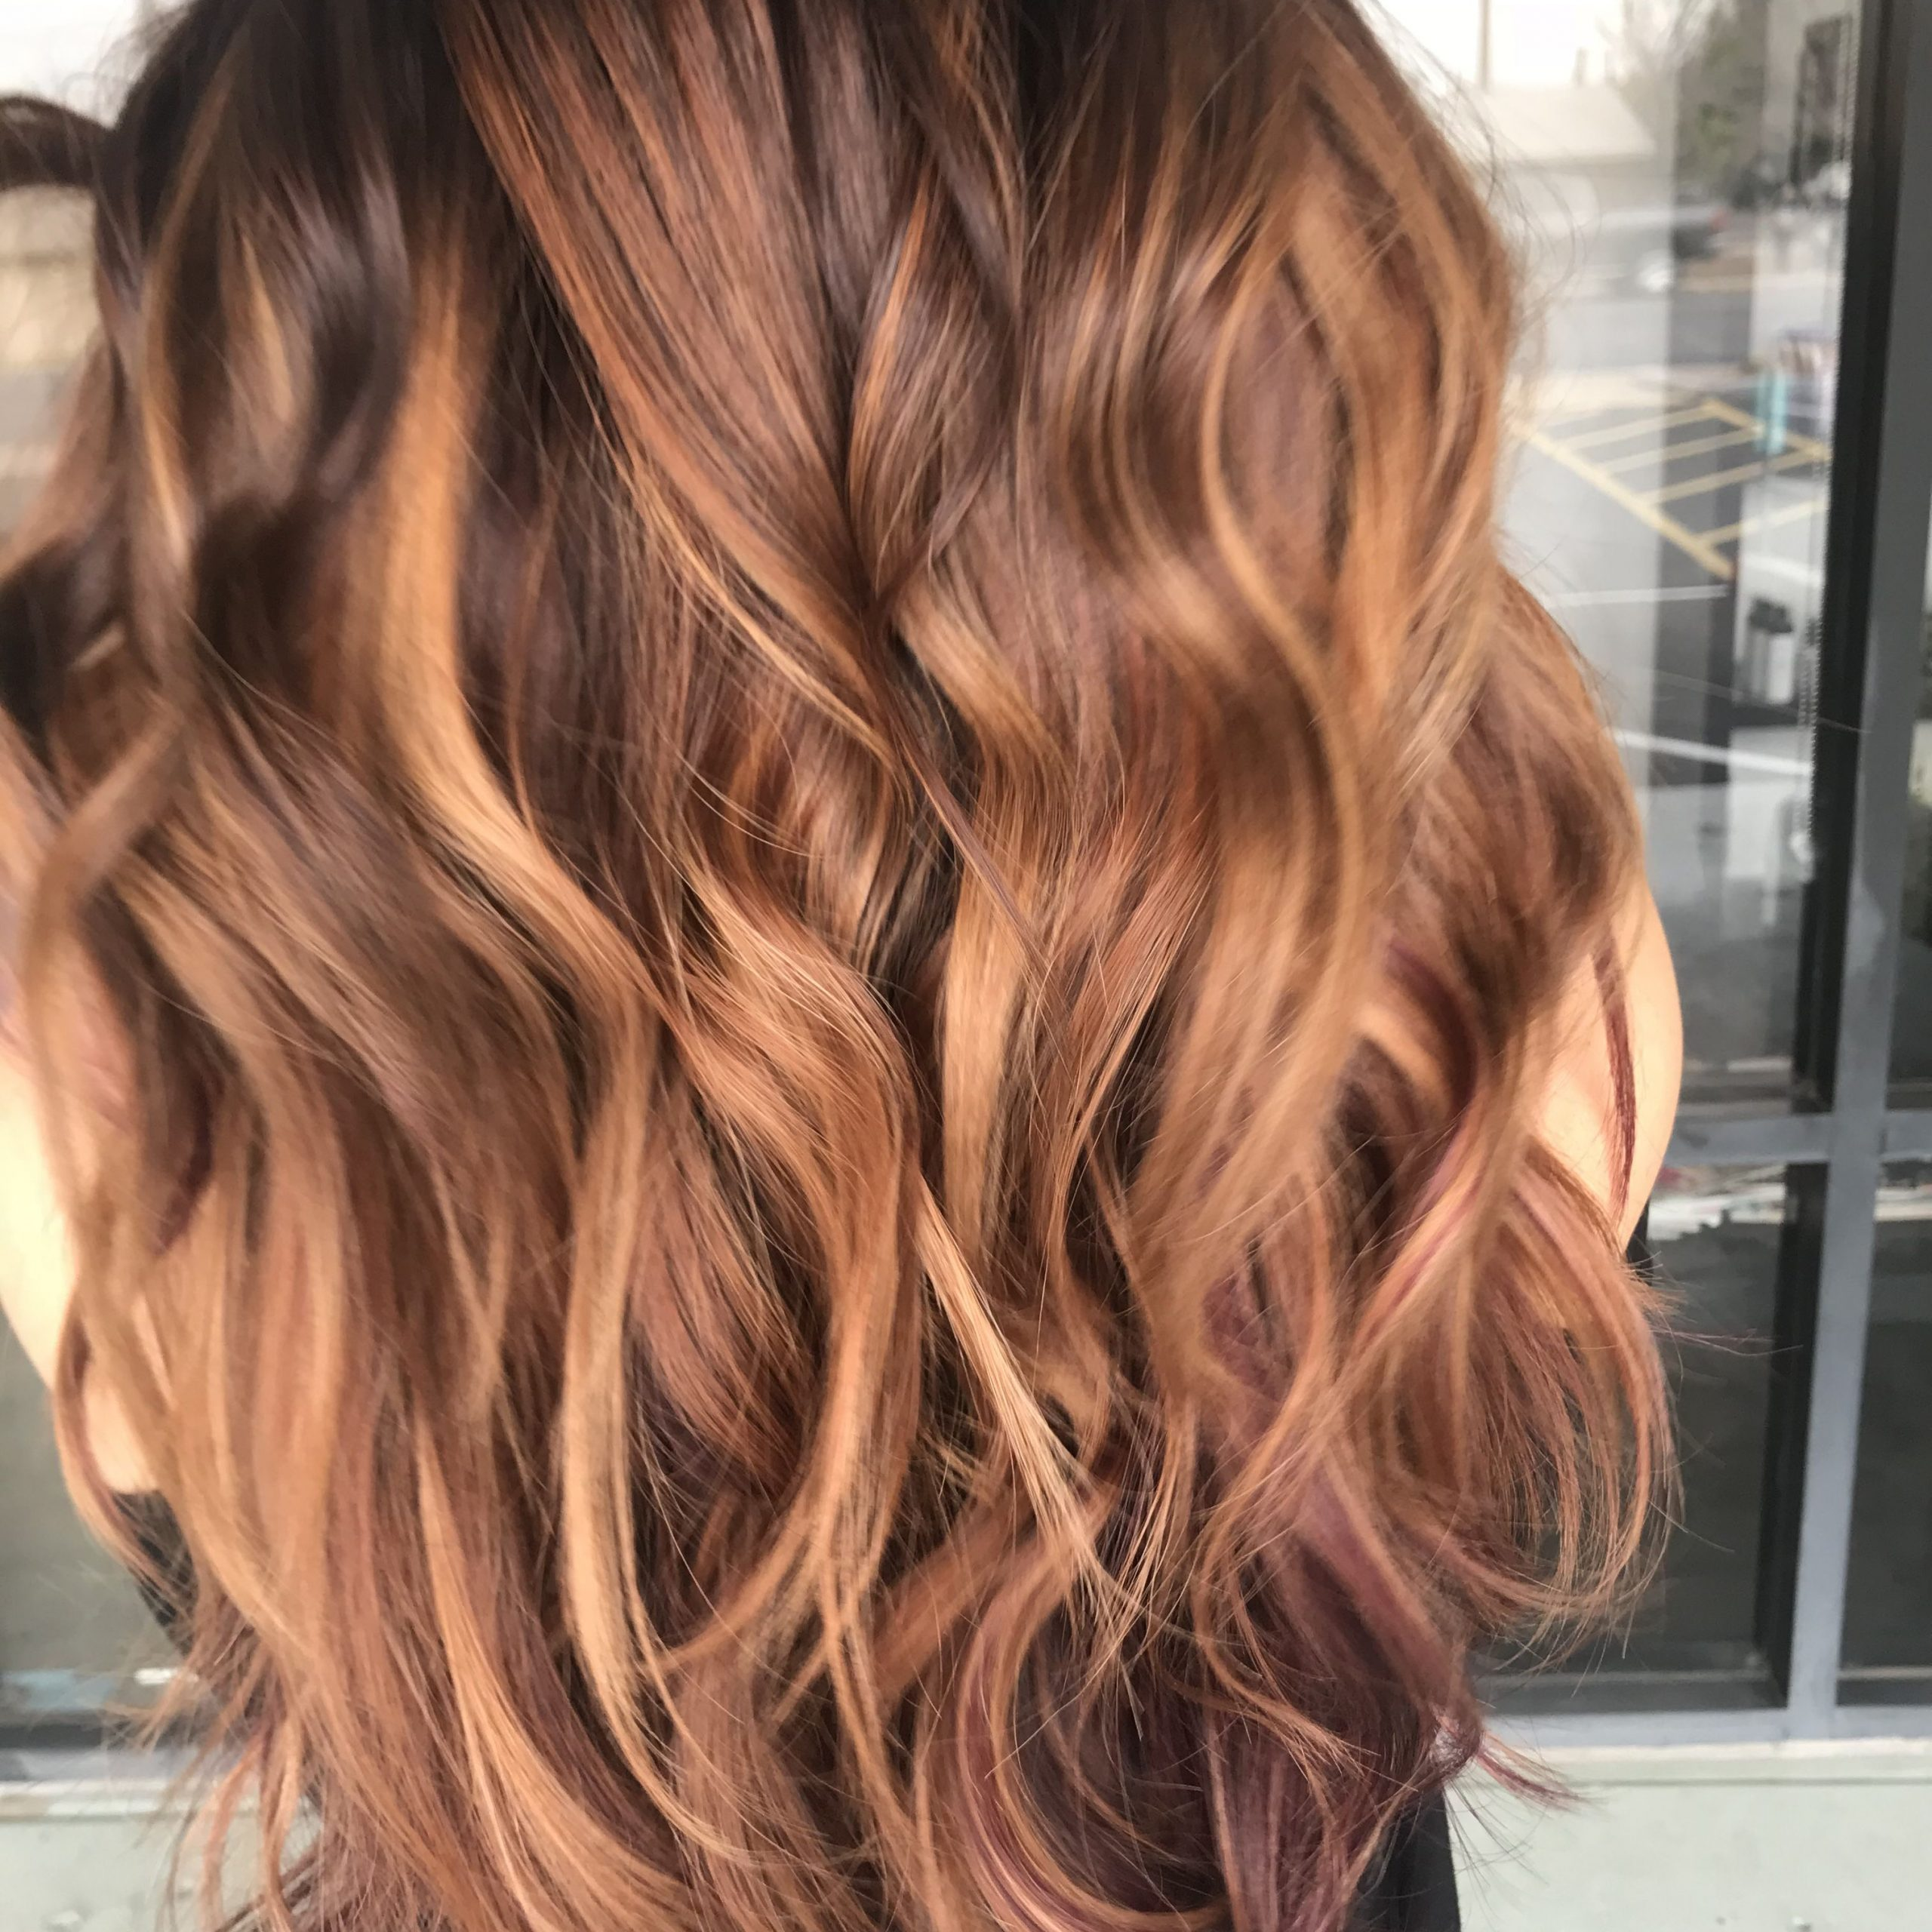 Spiced Cinnamon, Rich Chocolate, Color Melted Into Regarding Favorite Curls Hairstyles With Honey Blonde Balayage (View 15 of 20)